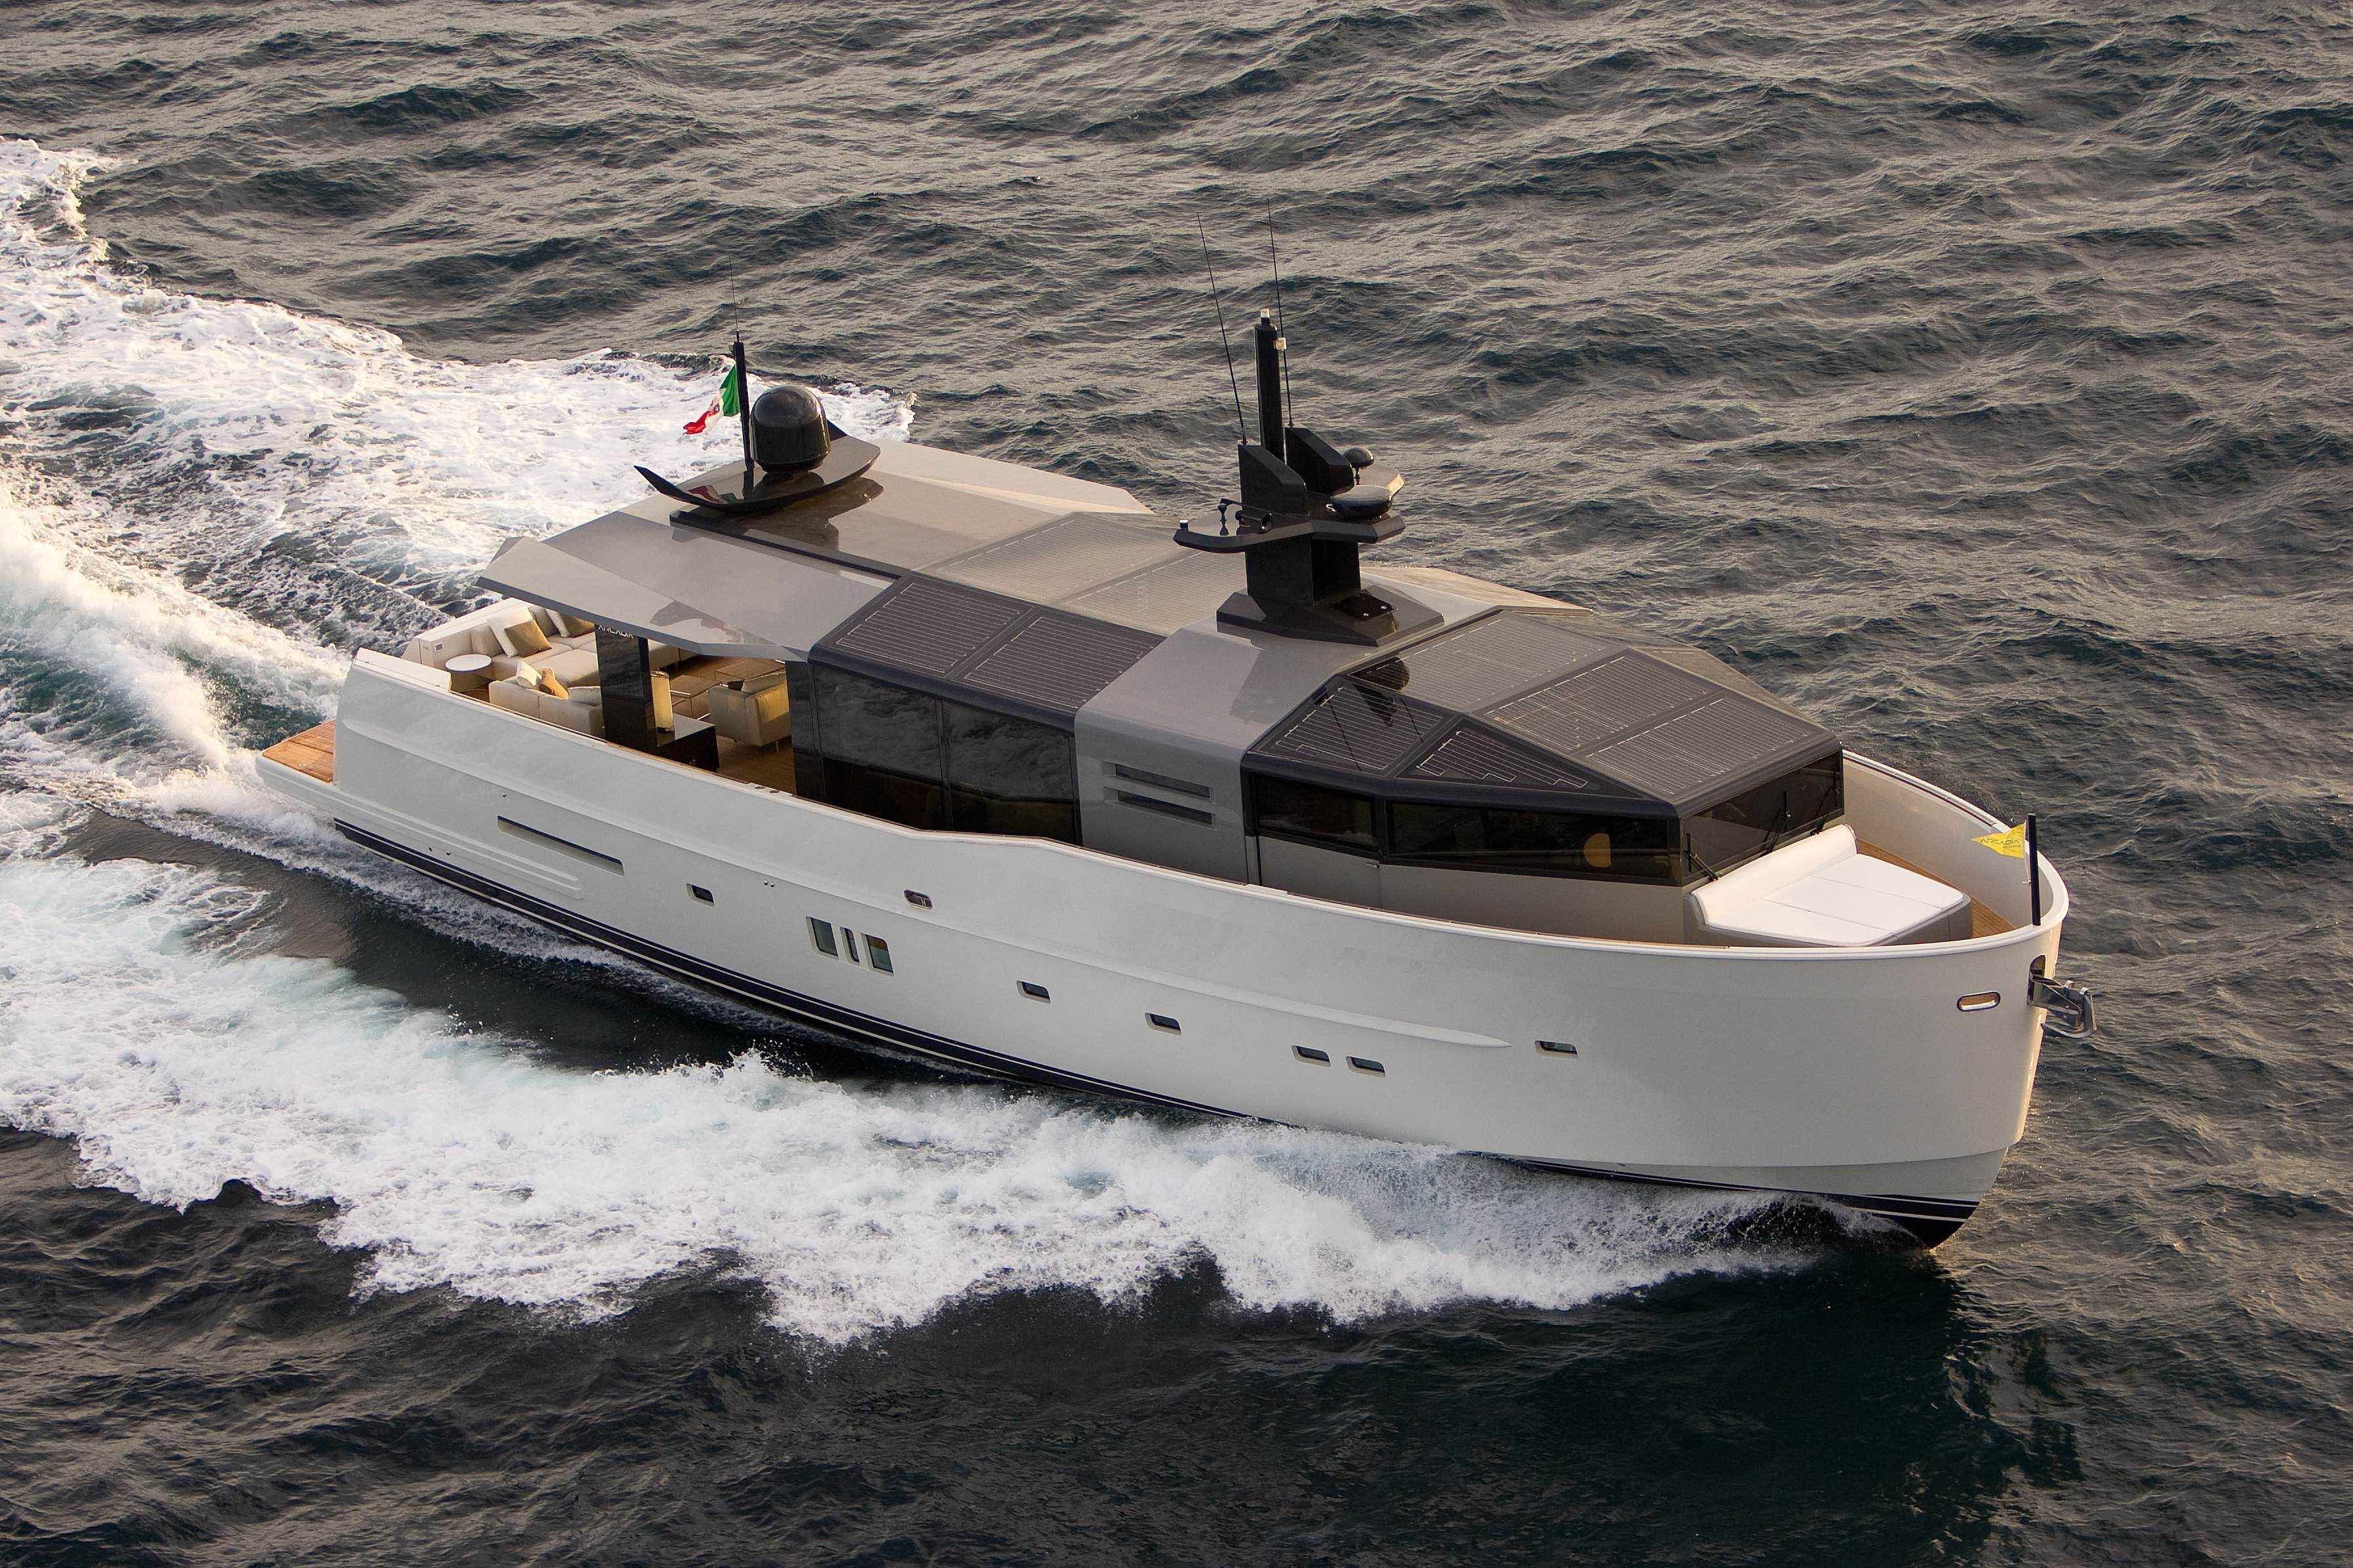 Arcadia 85 Hull 07 Motor Yacht Lady 007 Delivered In Hong